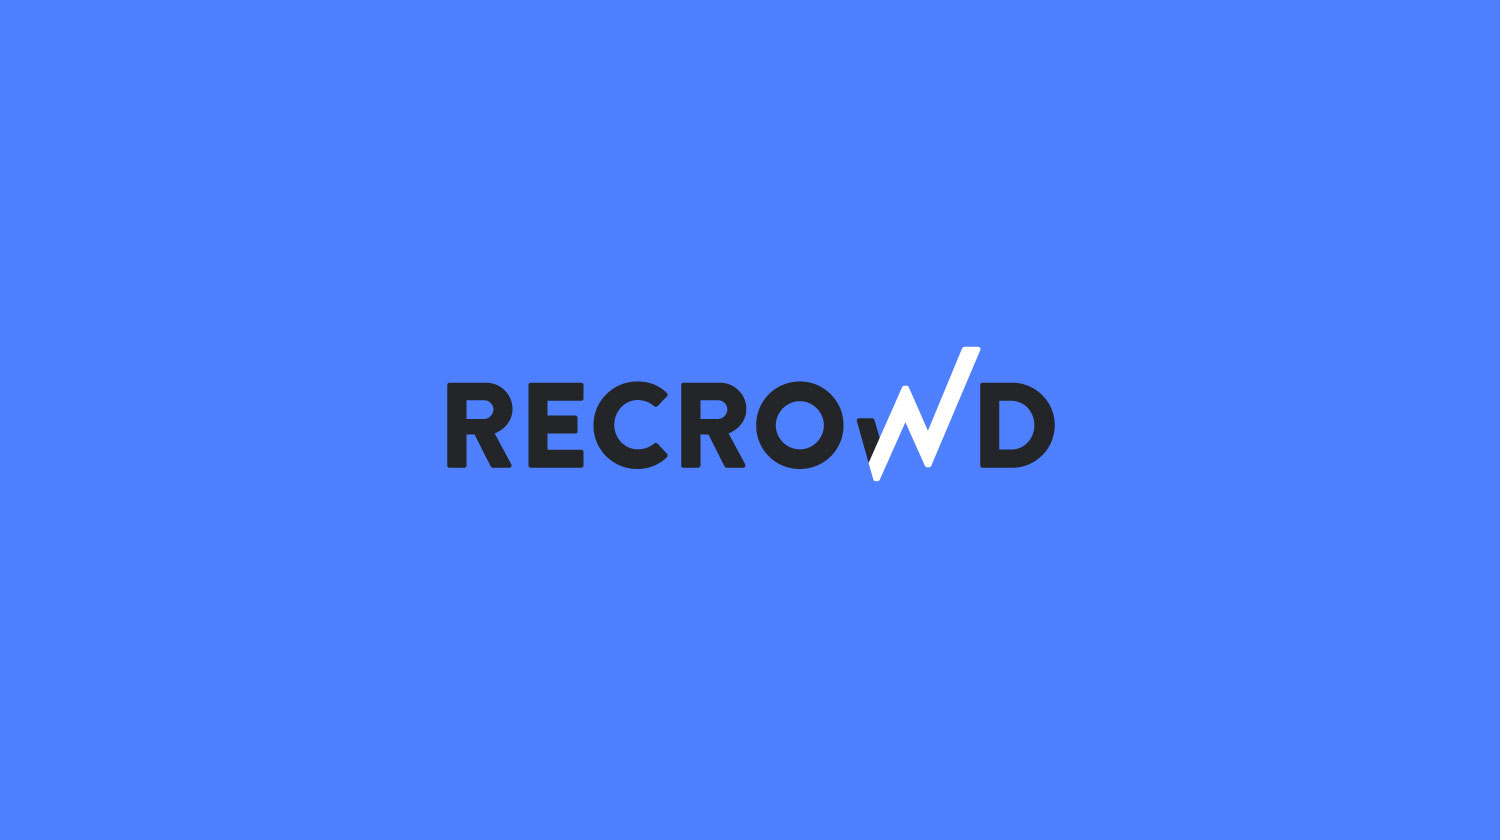 Recrowd